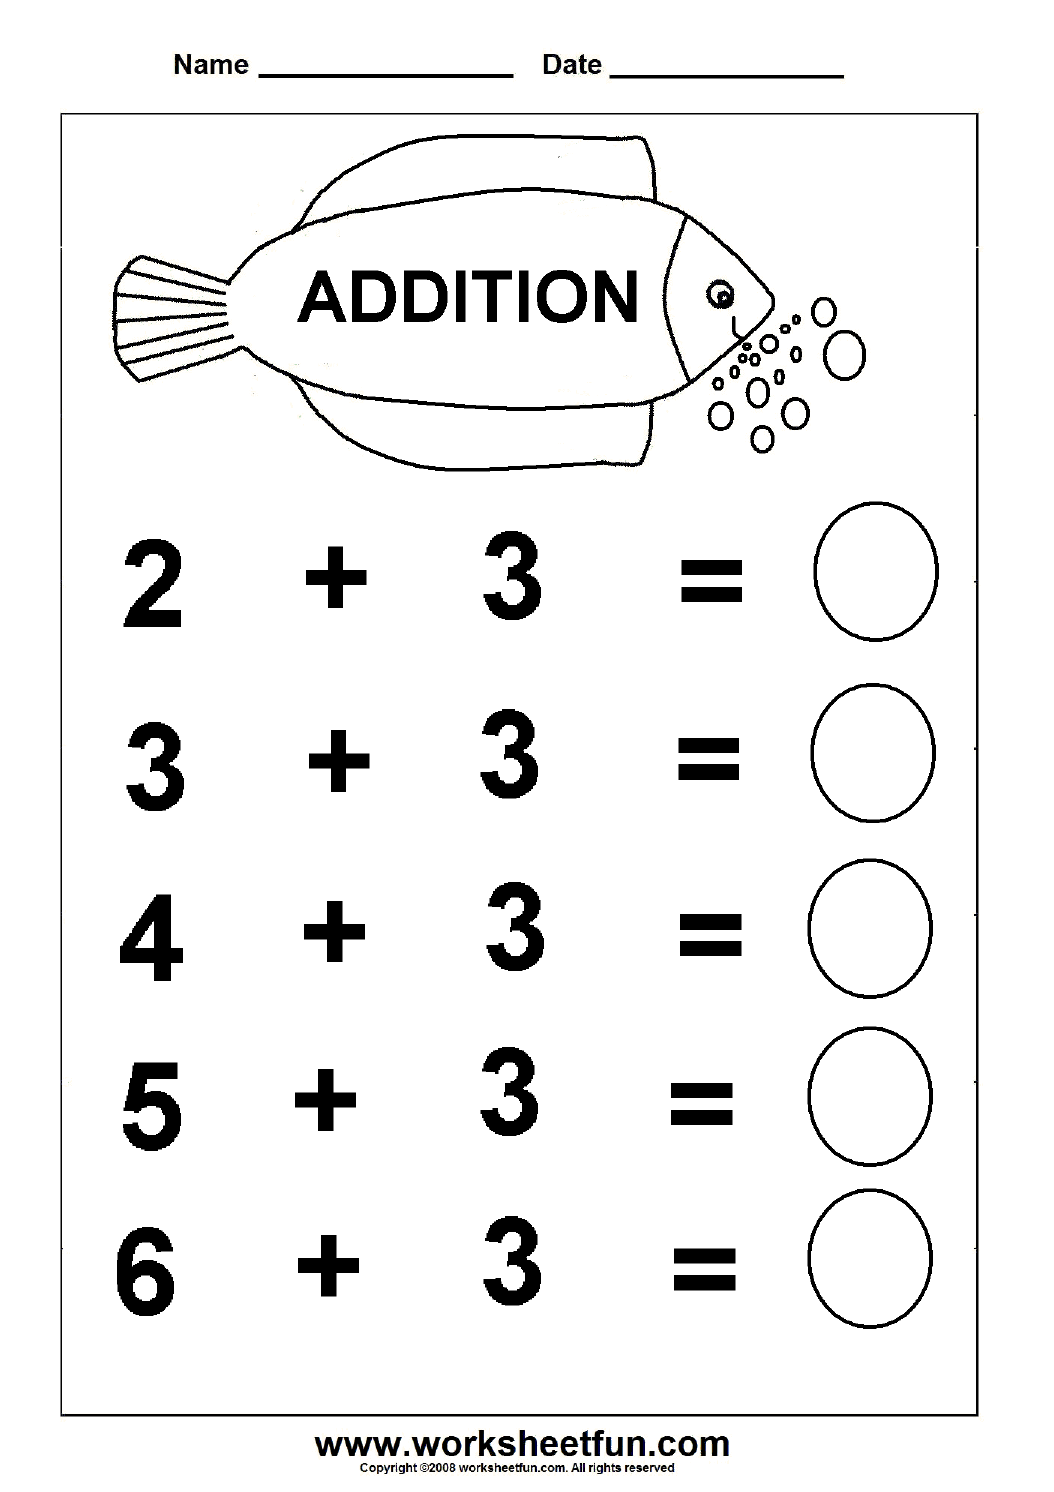 Printables Additions Worksheets beginner addition 6 kindergarten worksheets free subtraction worksheets